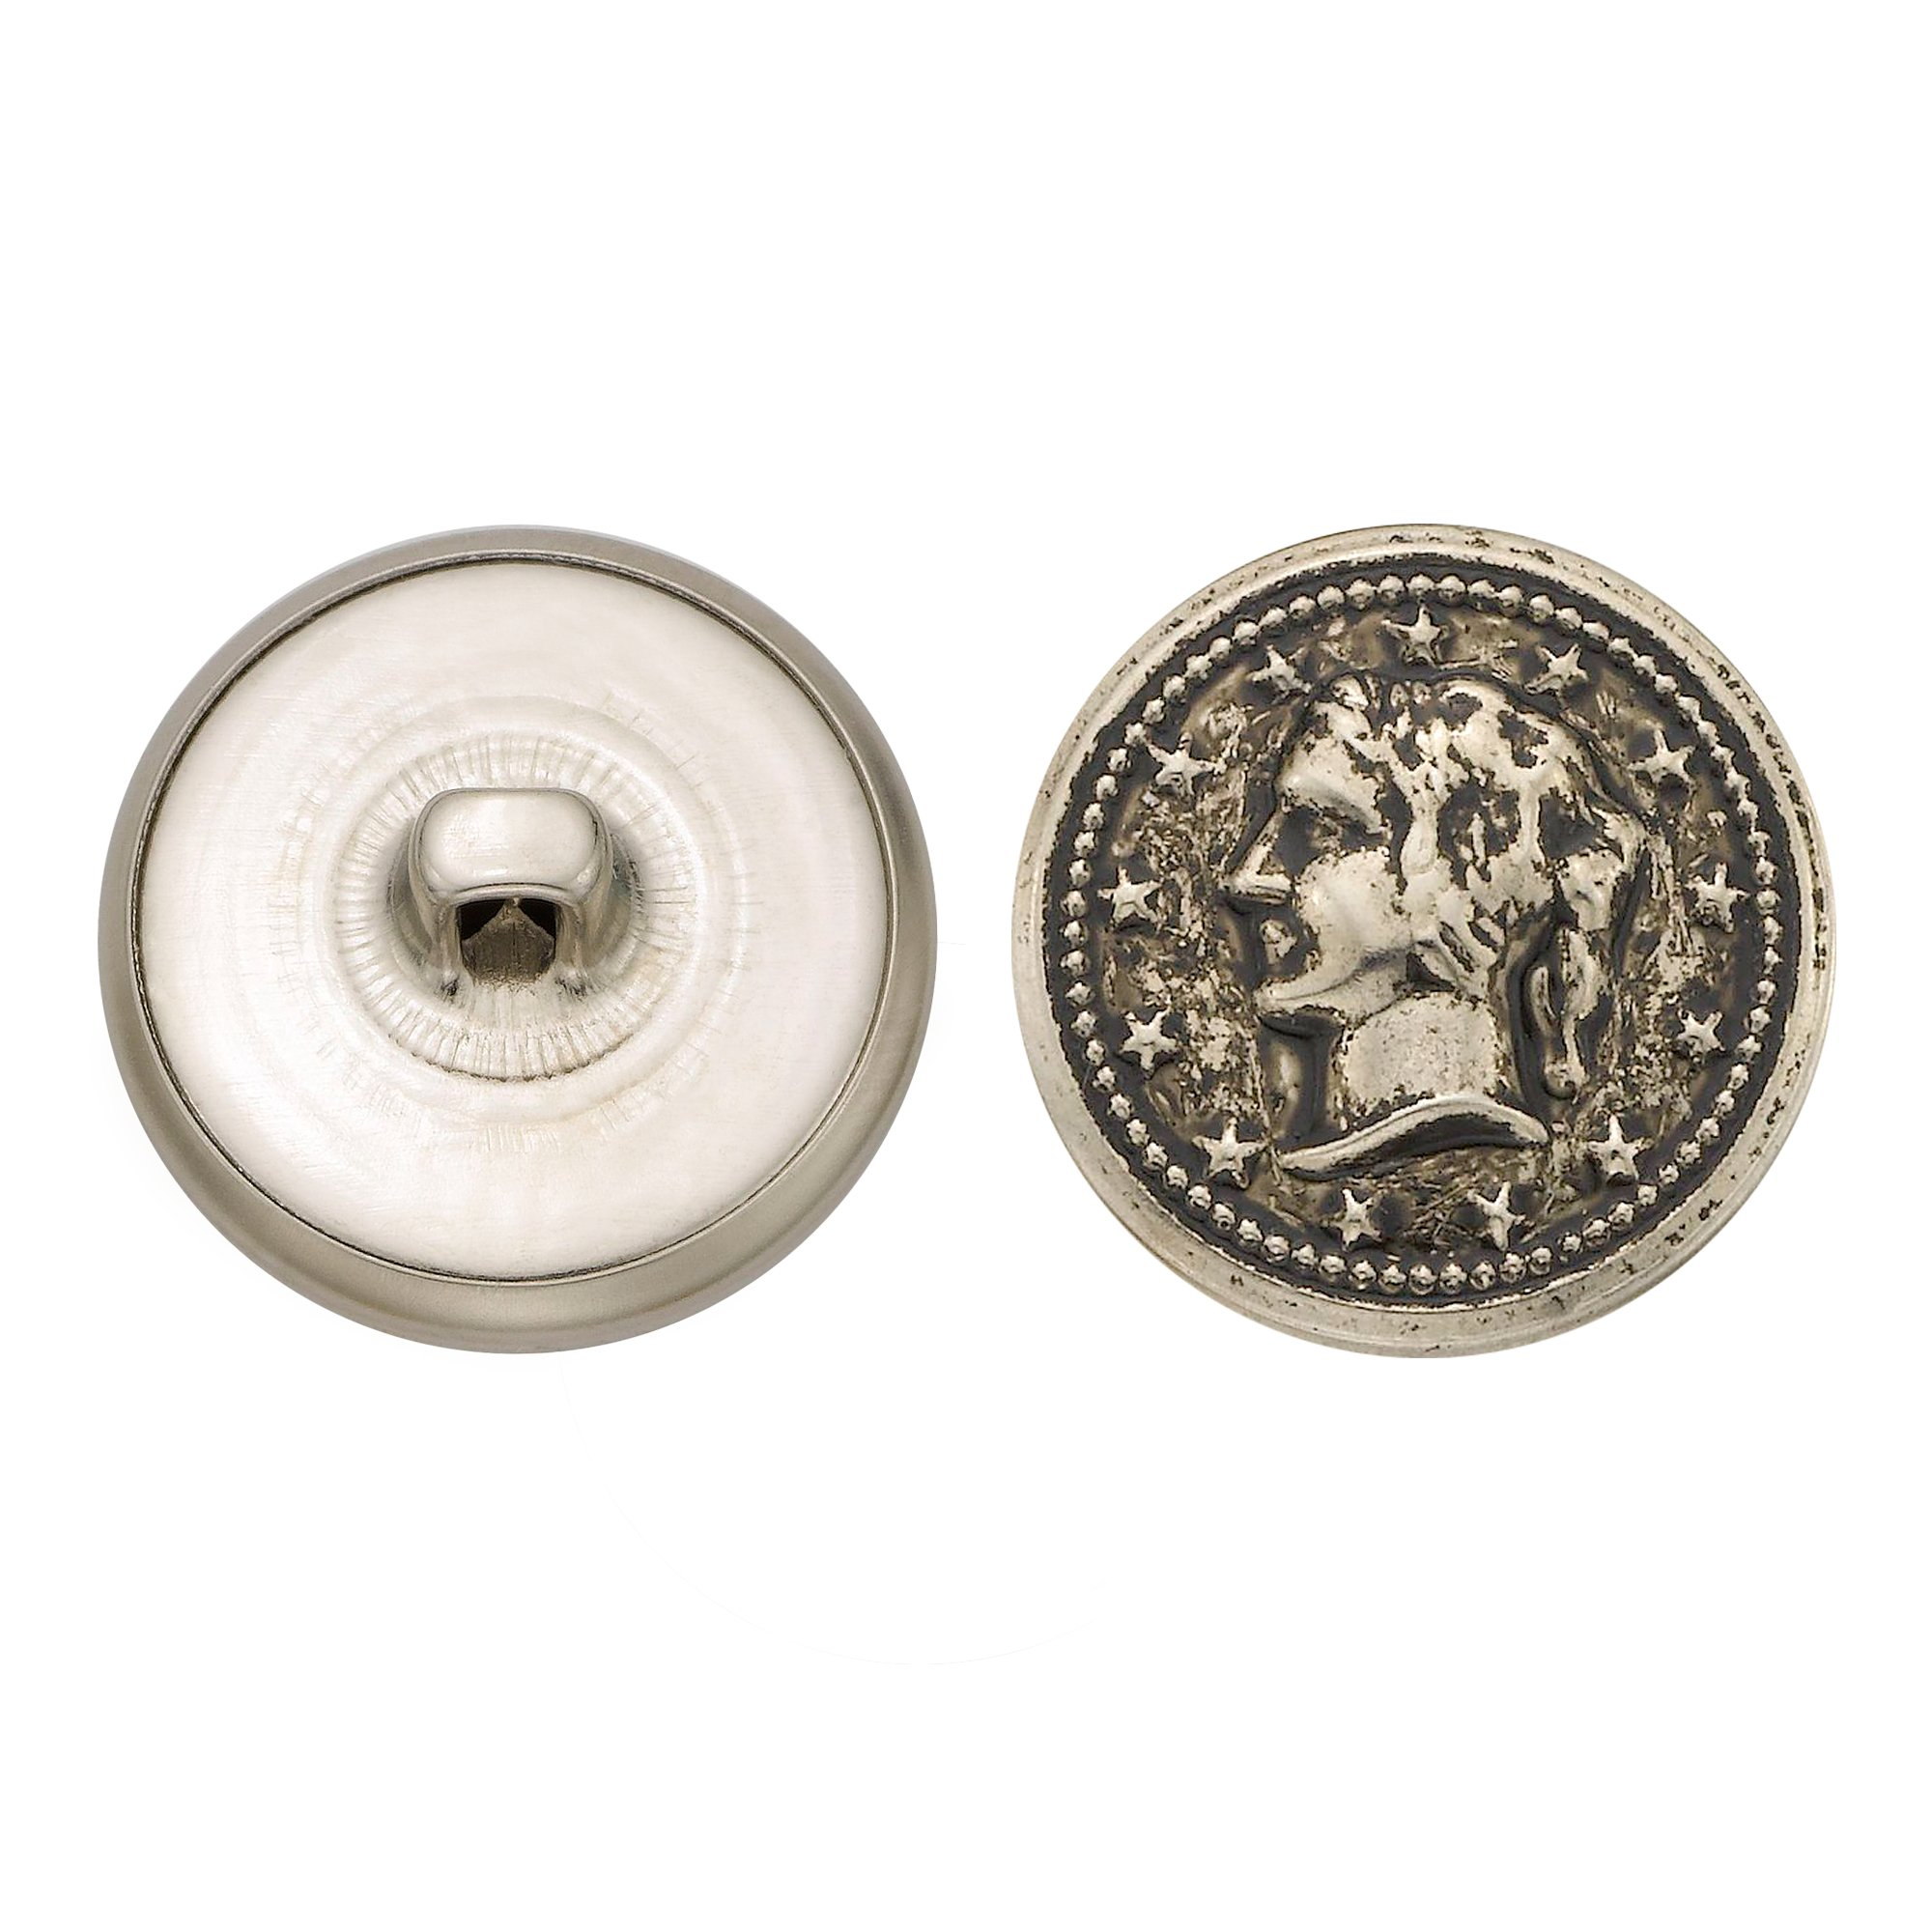 C&C Metal Products 5328 Lady Head Coin Metal Button, Size 36 Ligne, Antique Nickel, 36-Pack